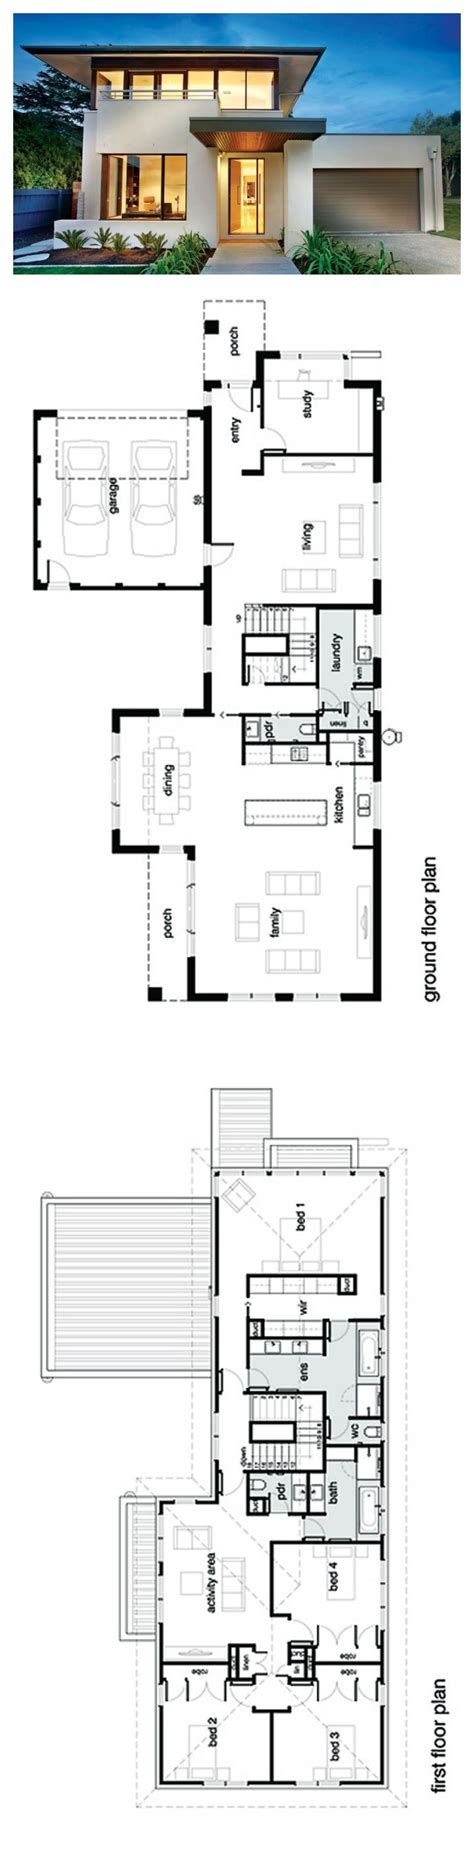 modern floor plan the 25 best ideas about modern house plans on pinterest